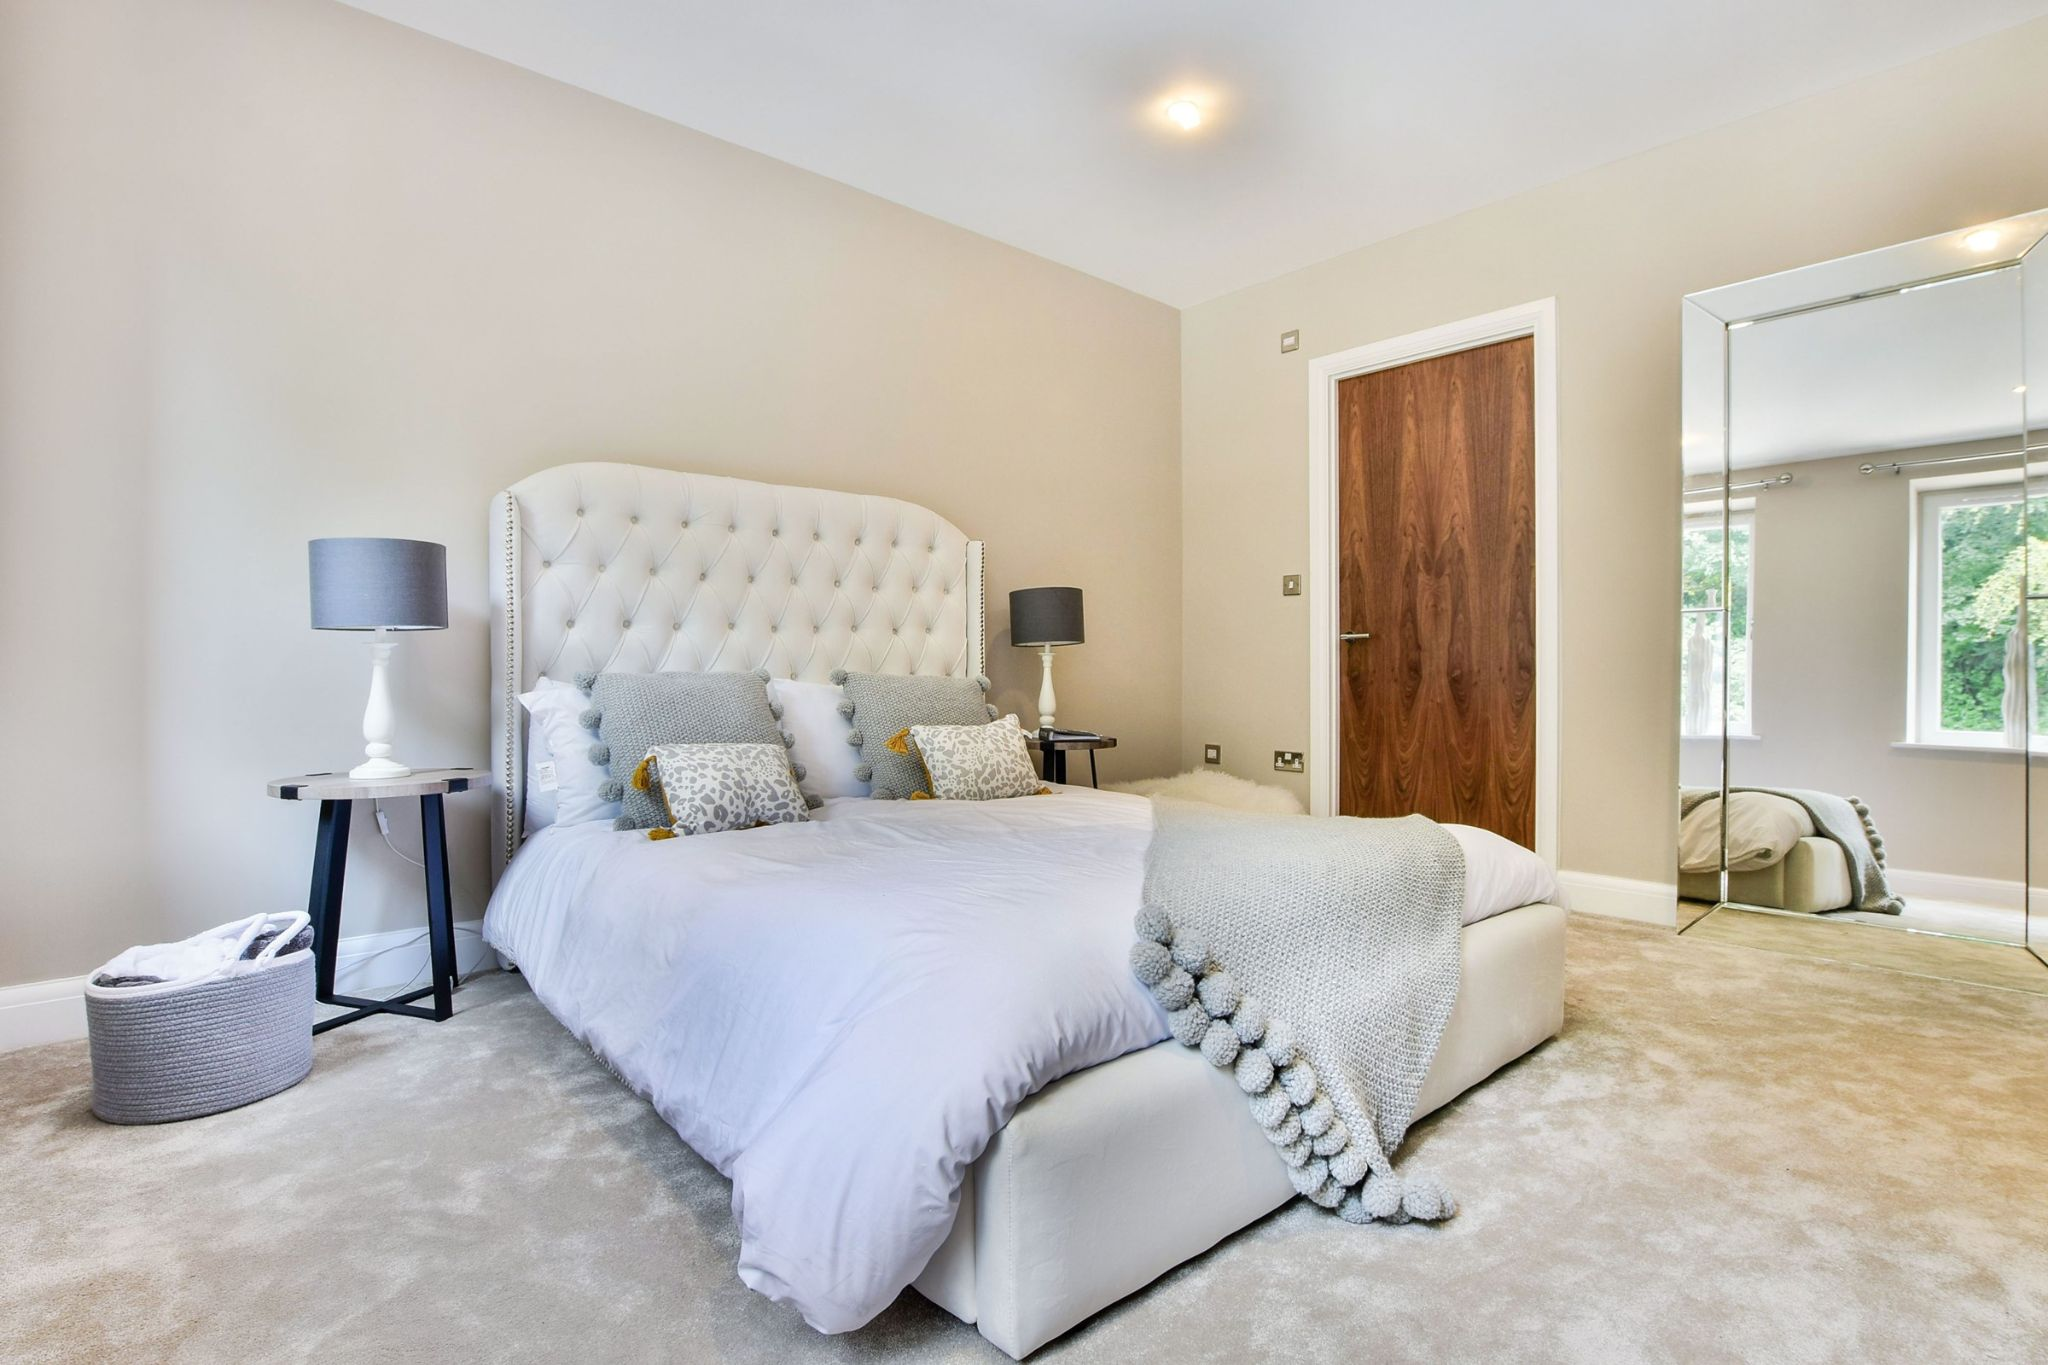 2 Bedroom Apartment Flat/apartment For Sale - Bedroom One